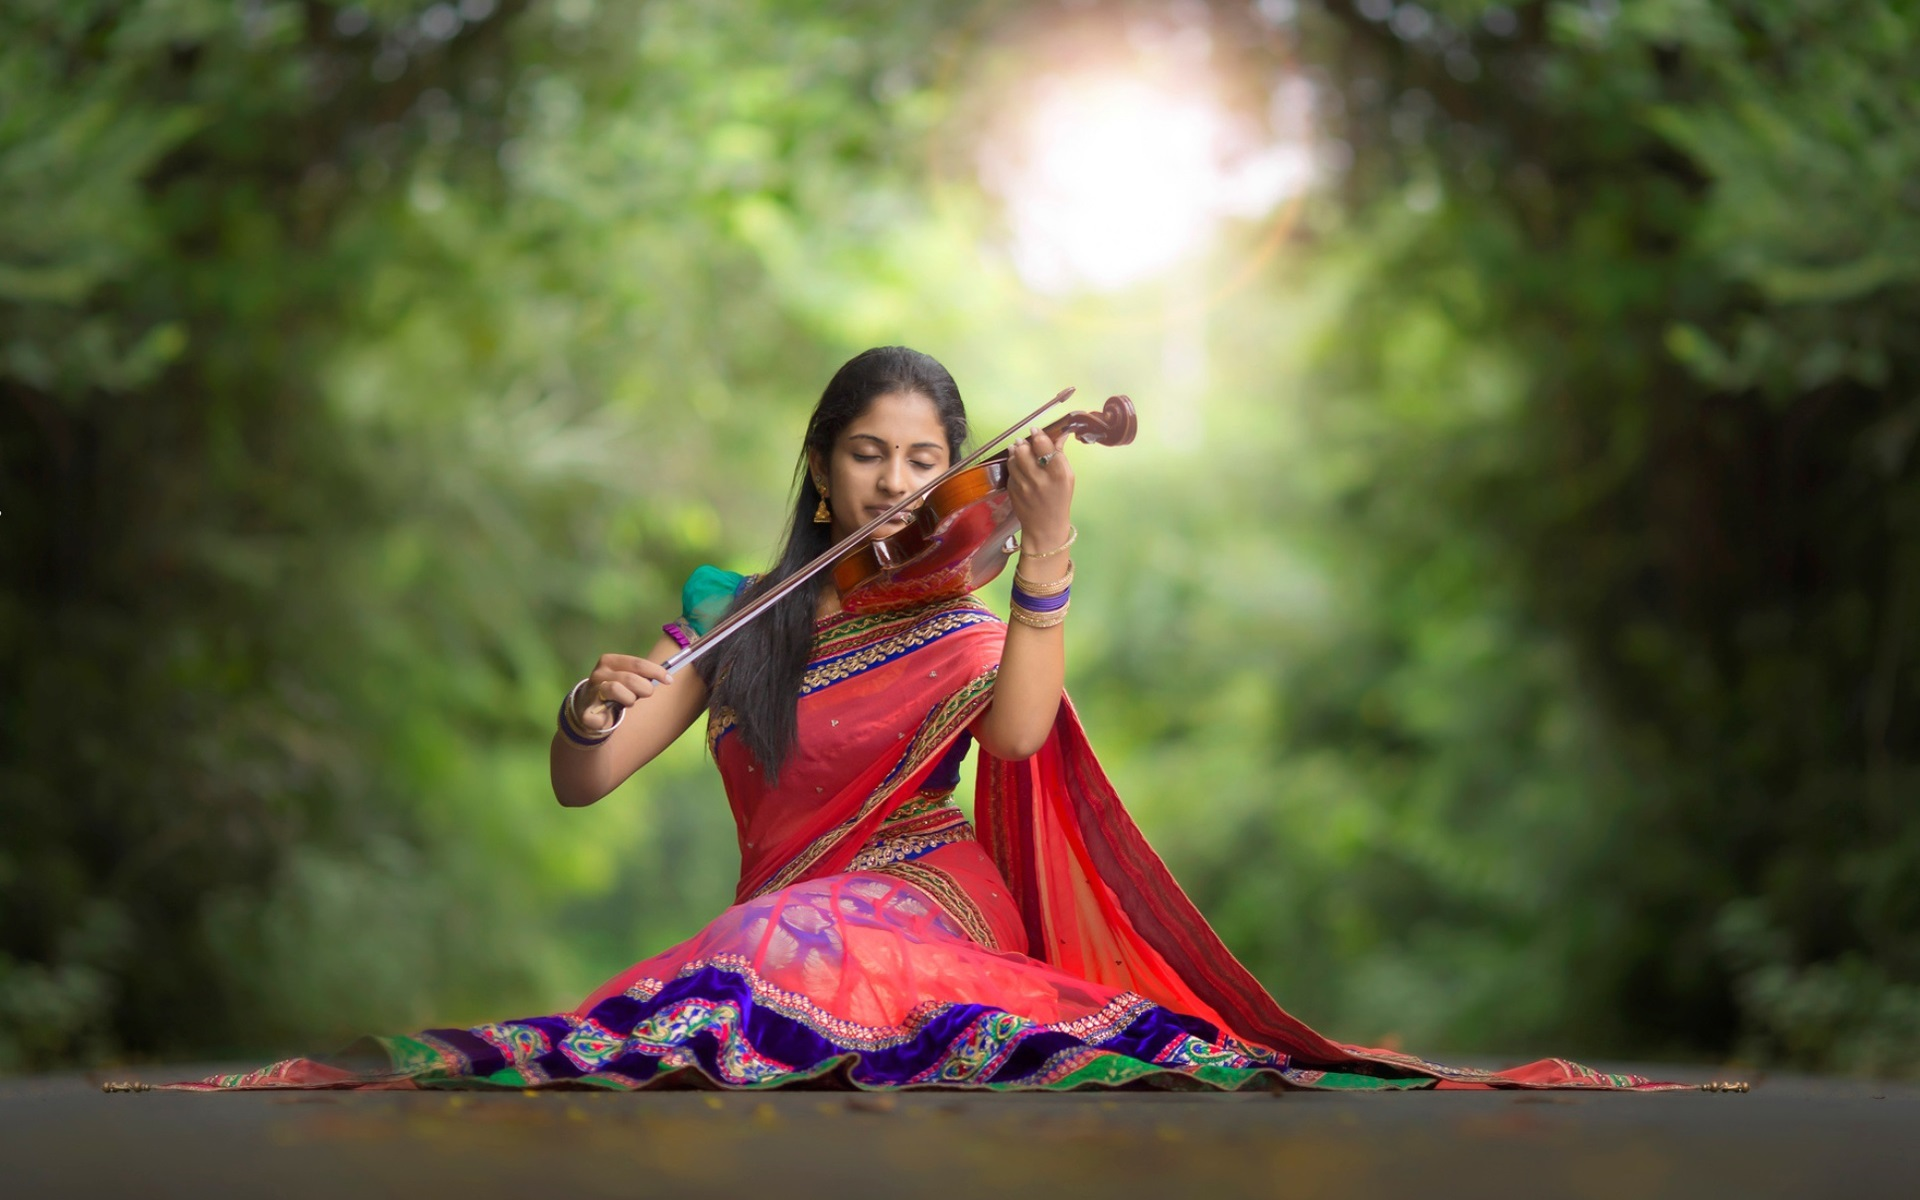 wallpaper indian girl, violin, music, road 1920x1200 hd picture, image